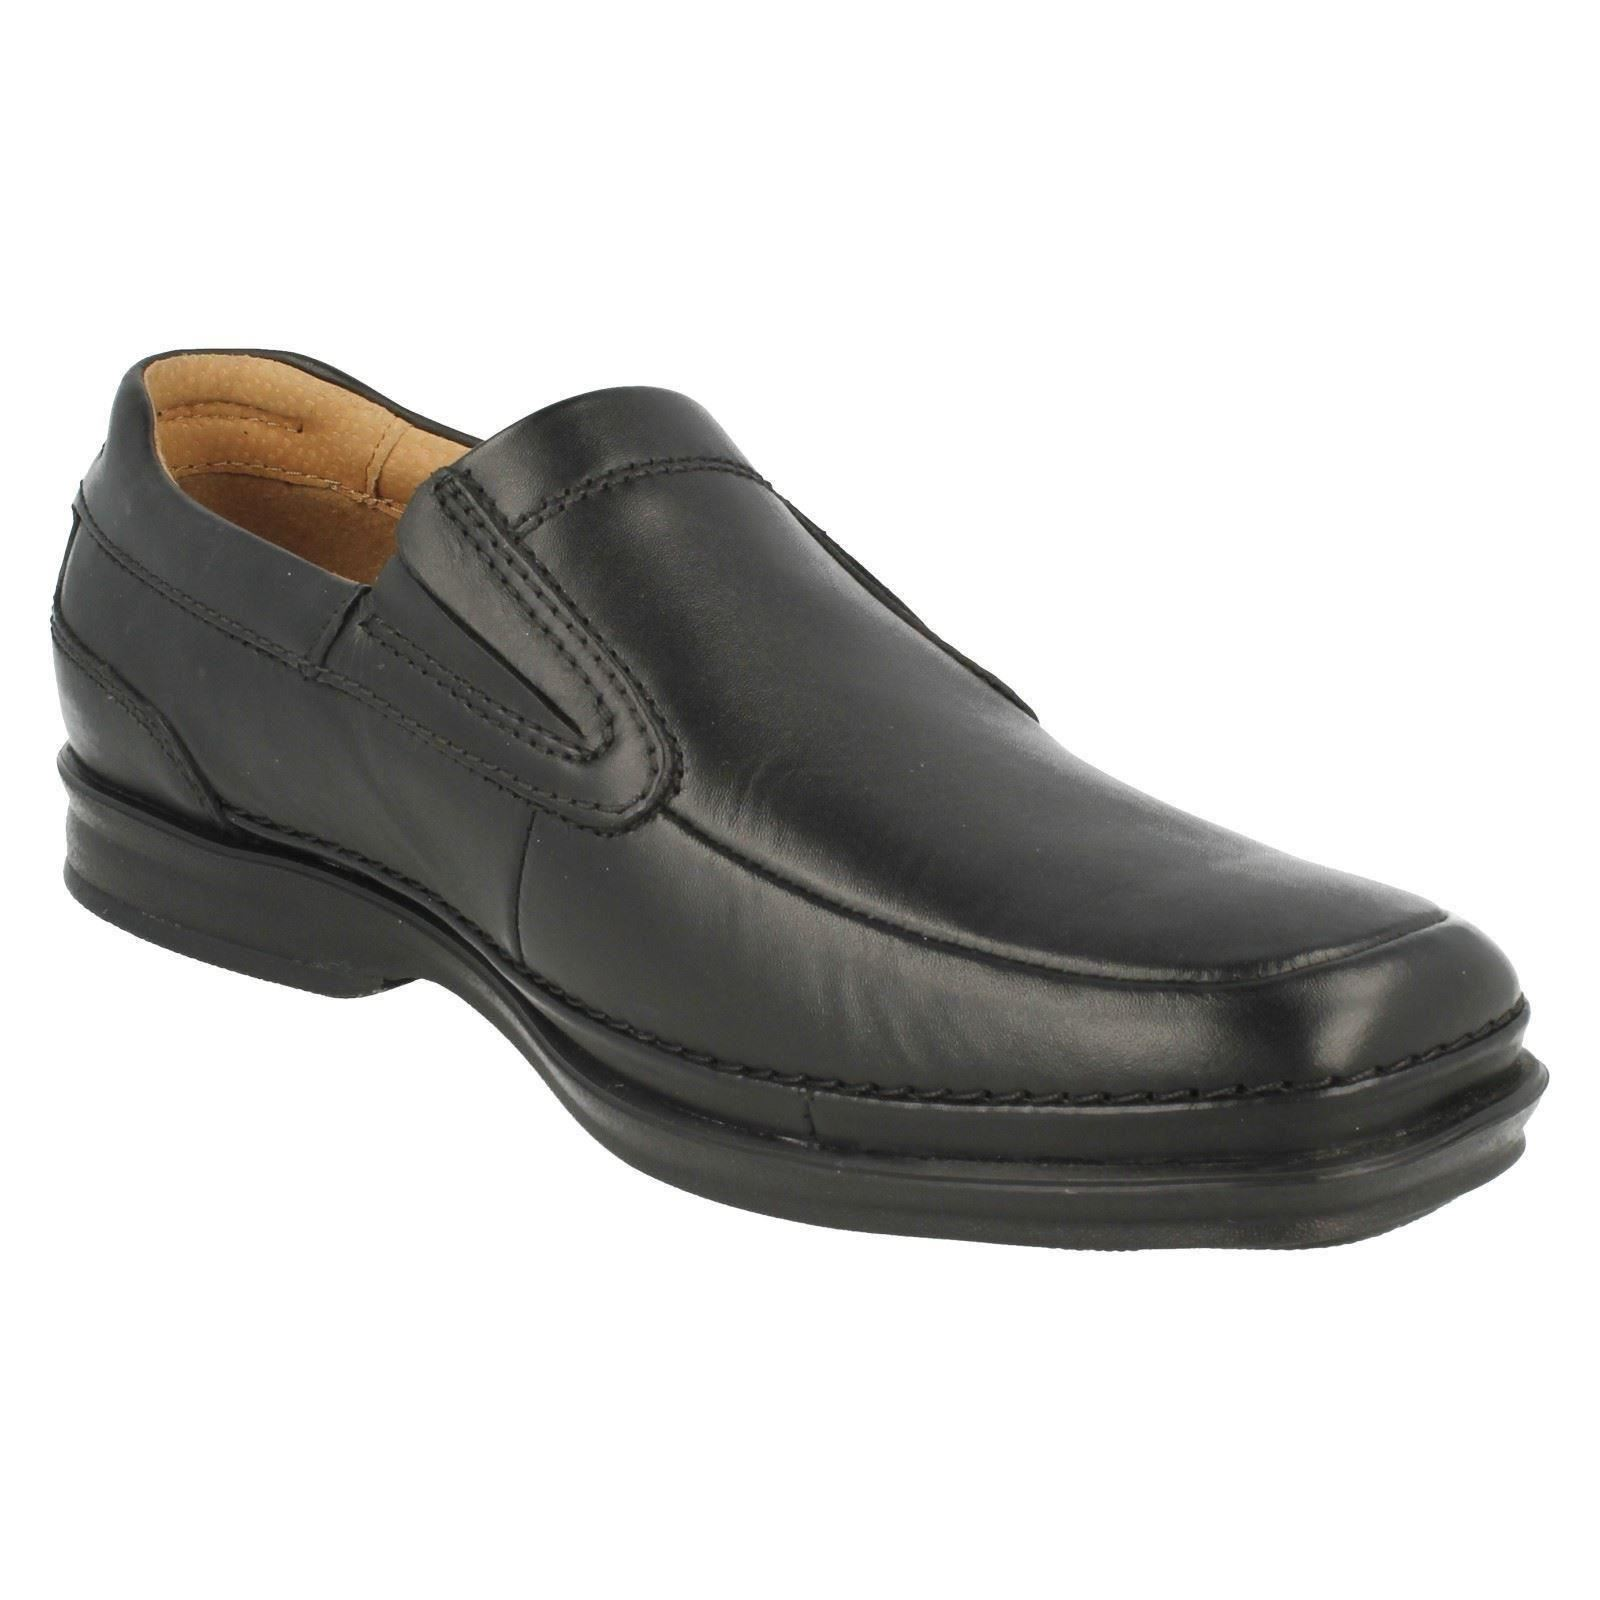 Clarks Extra Wide Mens Slip On Shoes